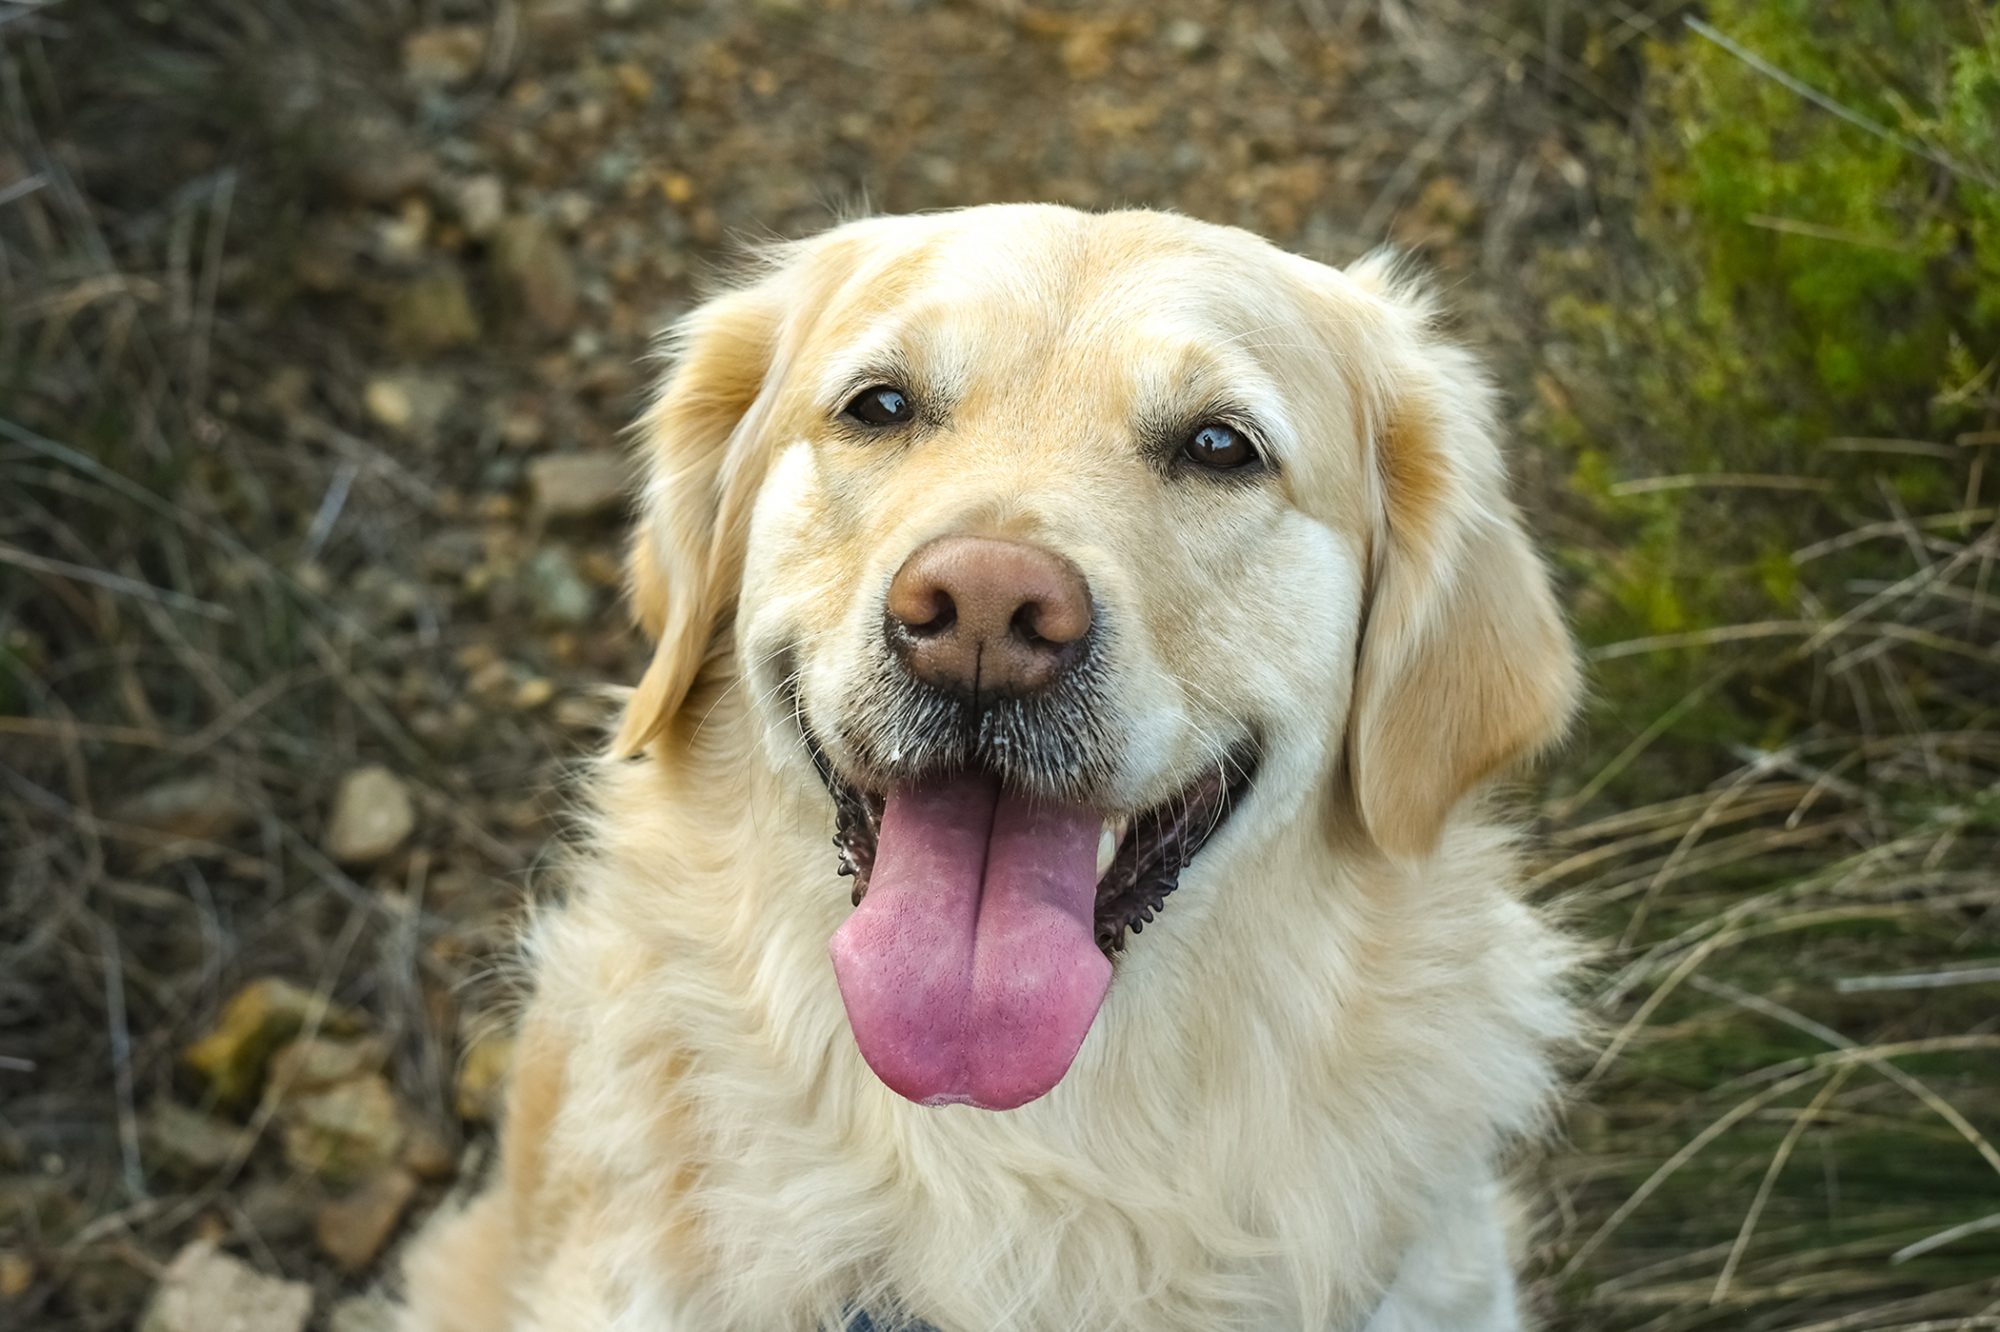 golden retriever looking up at the camera sitting in grass